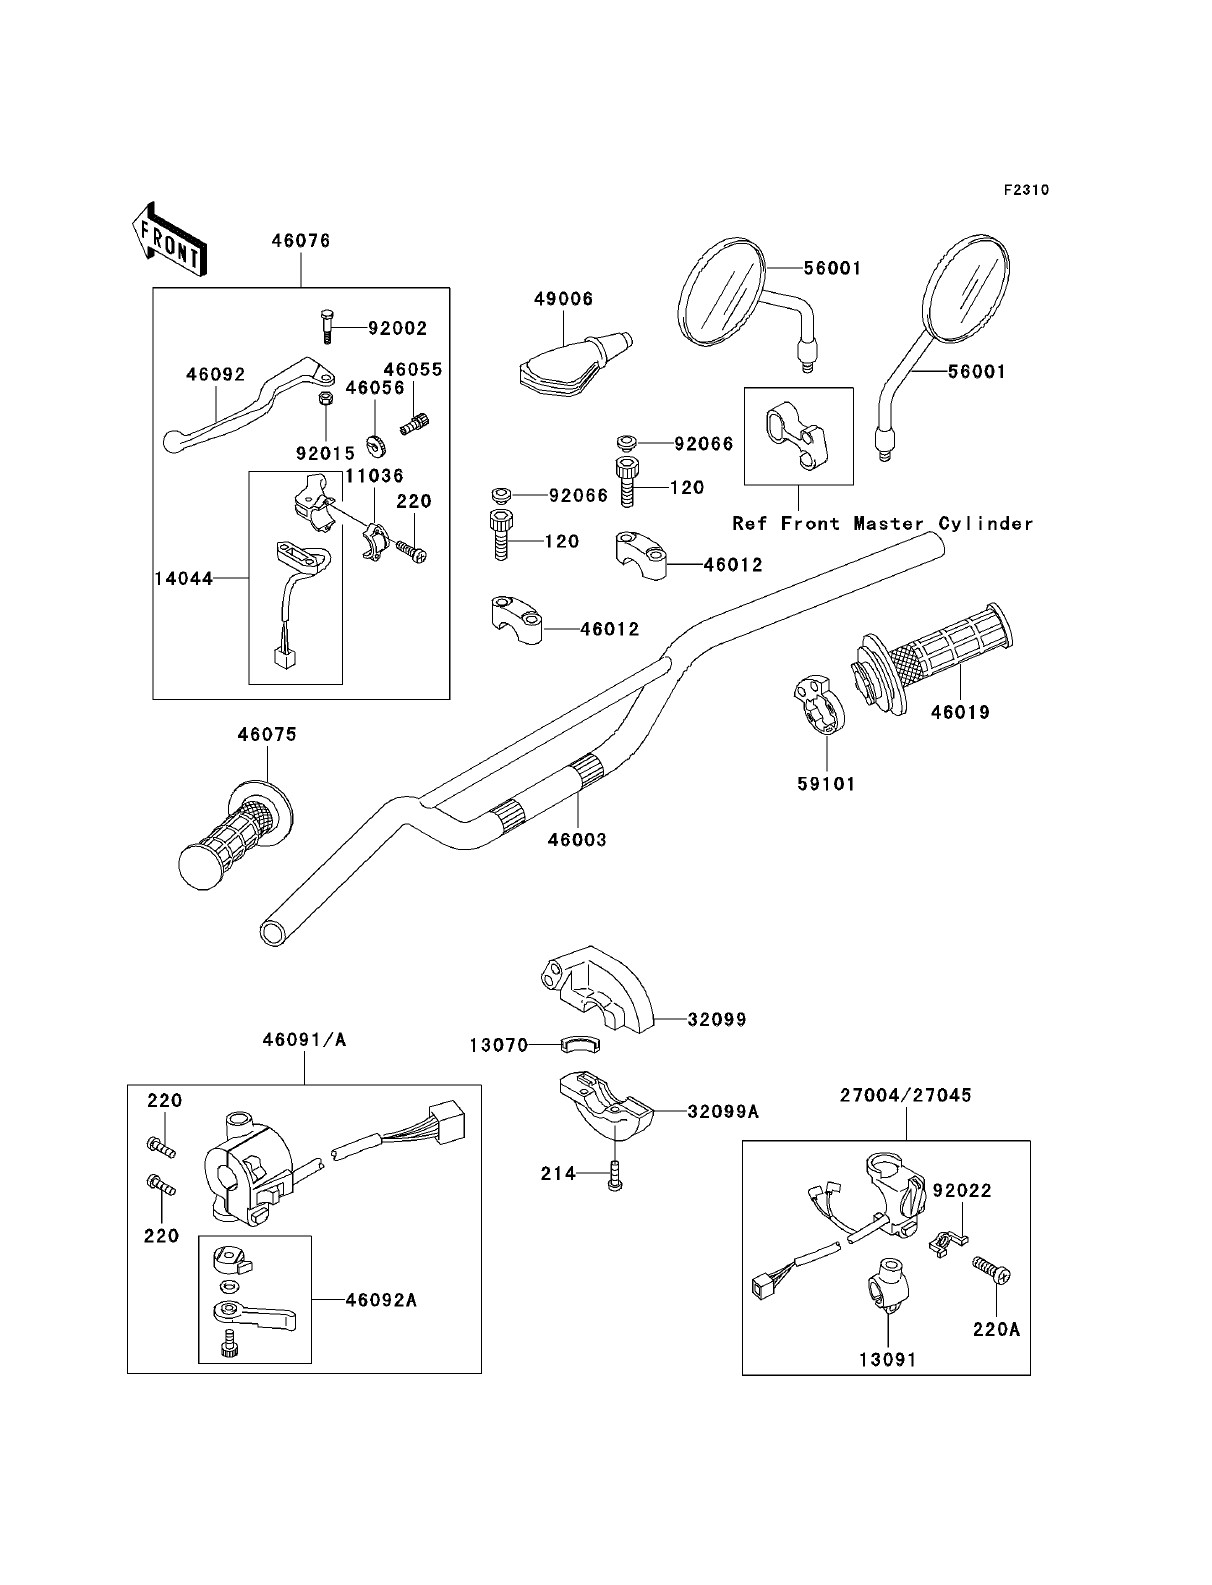 Clutch Master Cylinder Diagram Kawasaki Klr250 Kawasaki Klr250 Parts Diagrams Of Clutch Master Cylinder Diagram